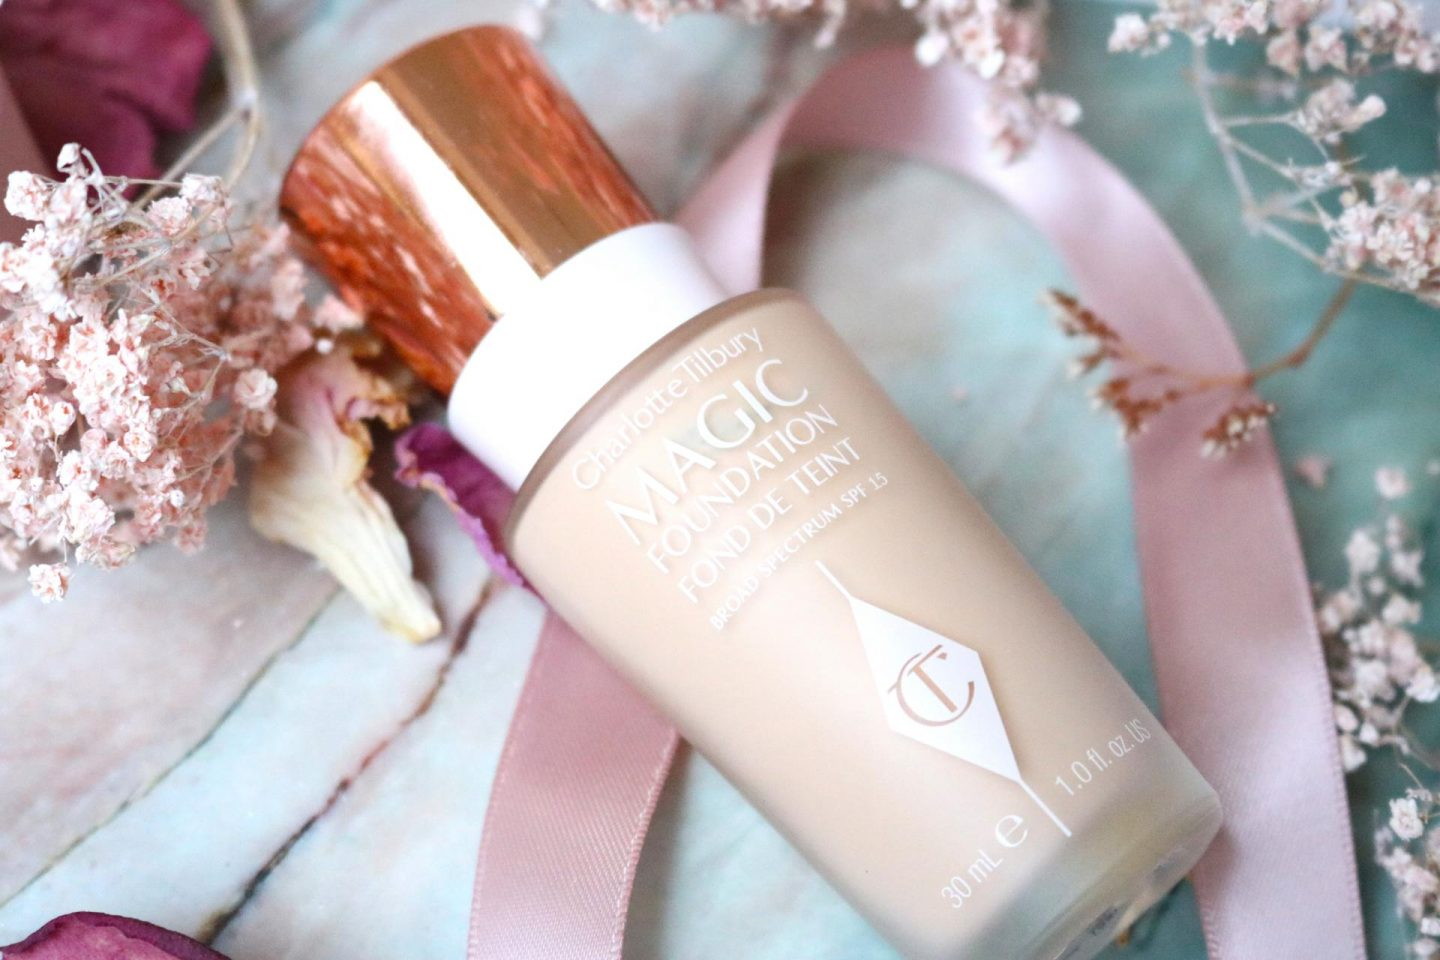 Does a Magic Foundation exist? Charlotte Tilbury has it!